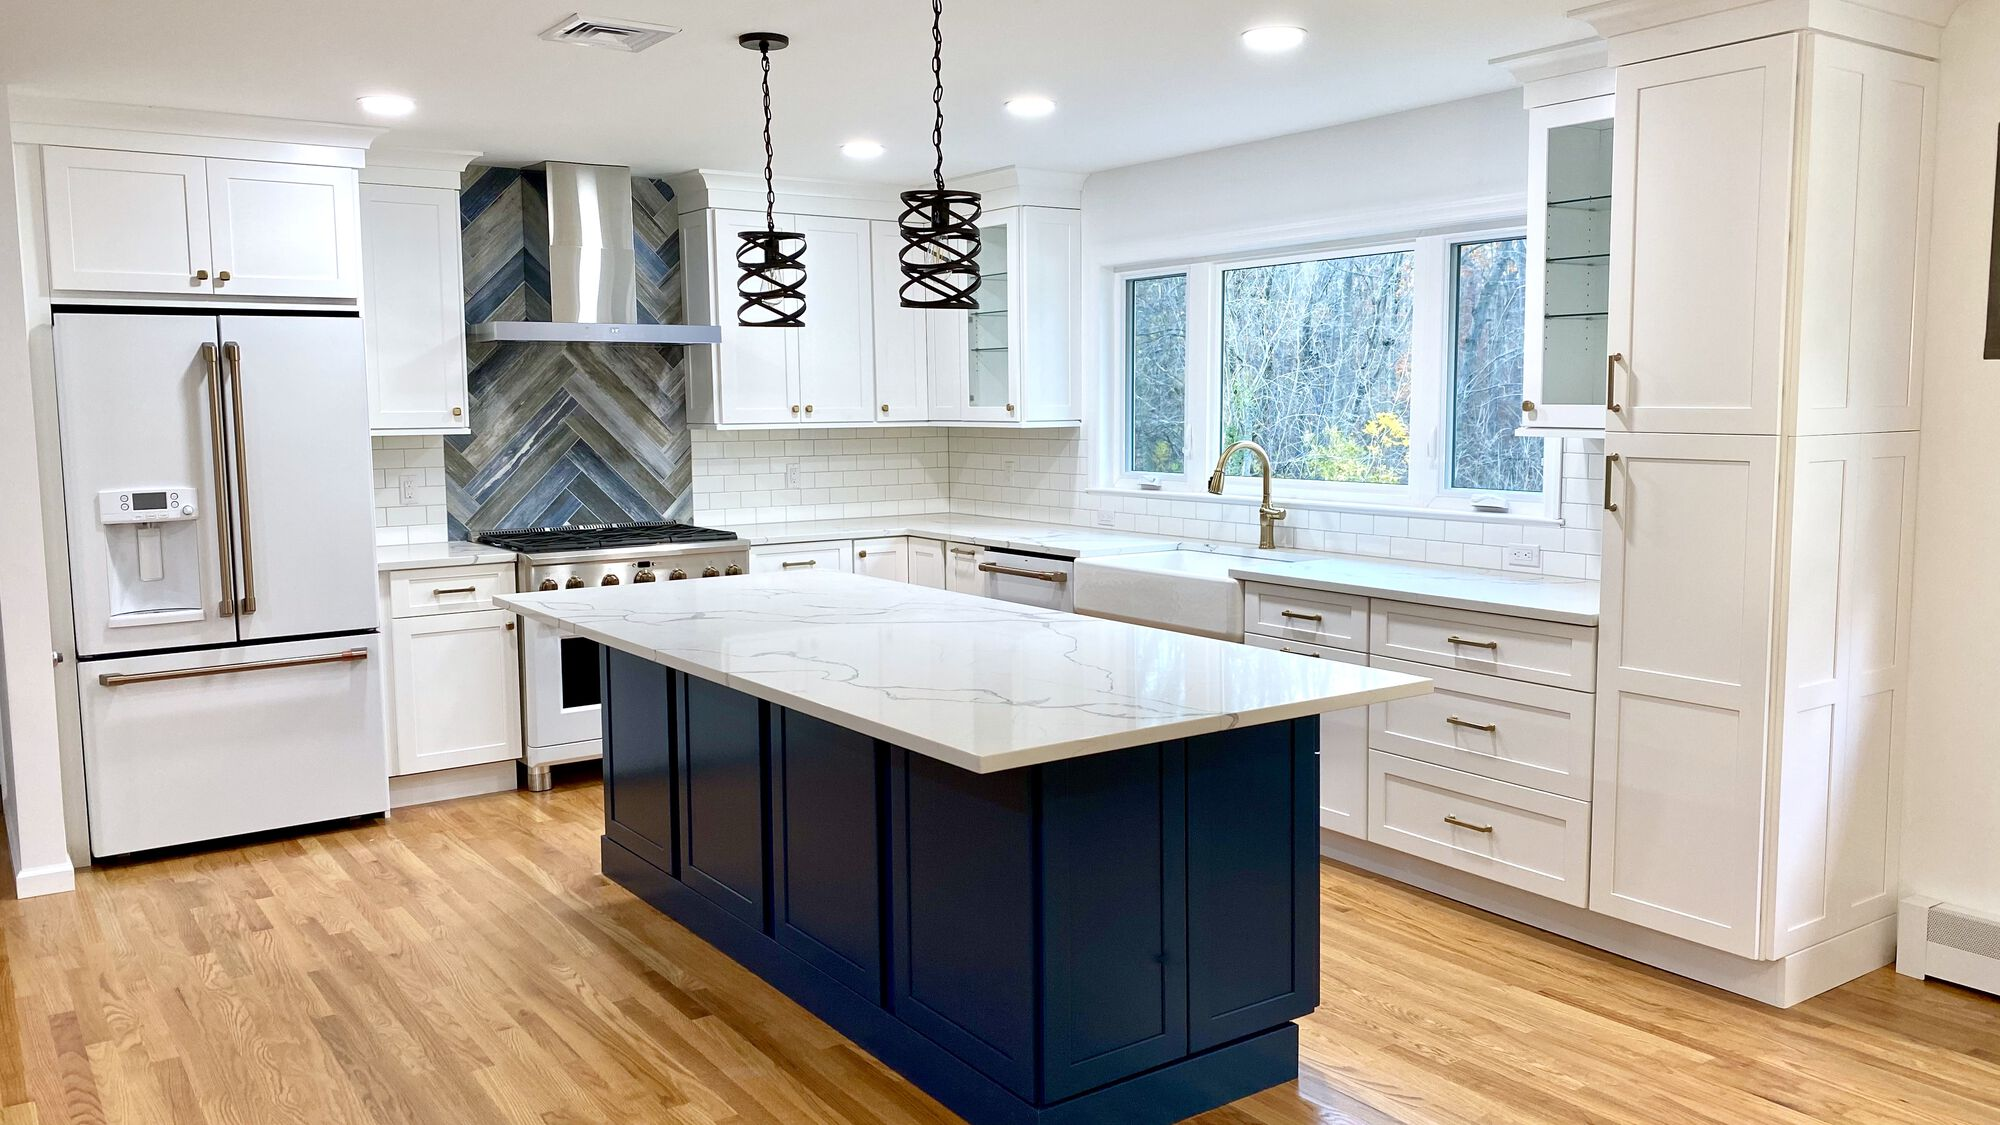 Island in Custom Blue Color, New Window facing Yard with Sink Under, GE Cafe Appliances Matte White Finish, Oak Flooring in Berkeley Heights, Union County NJ